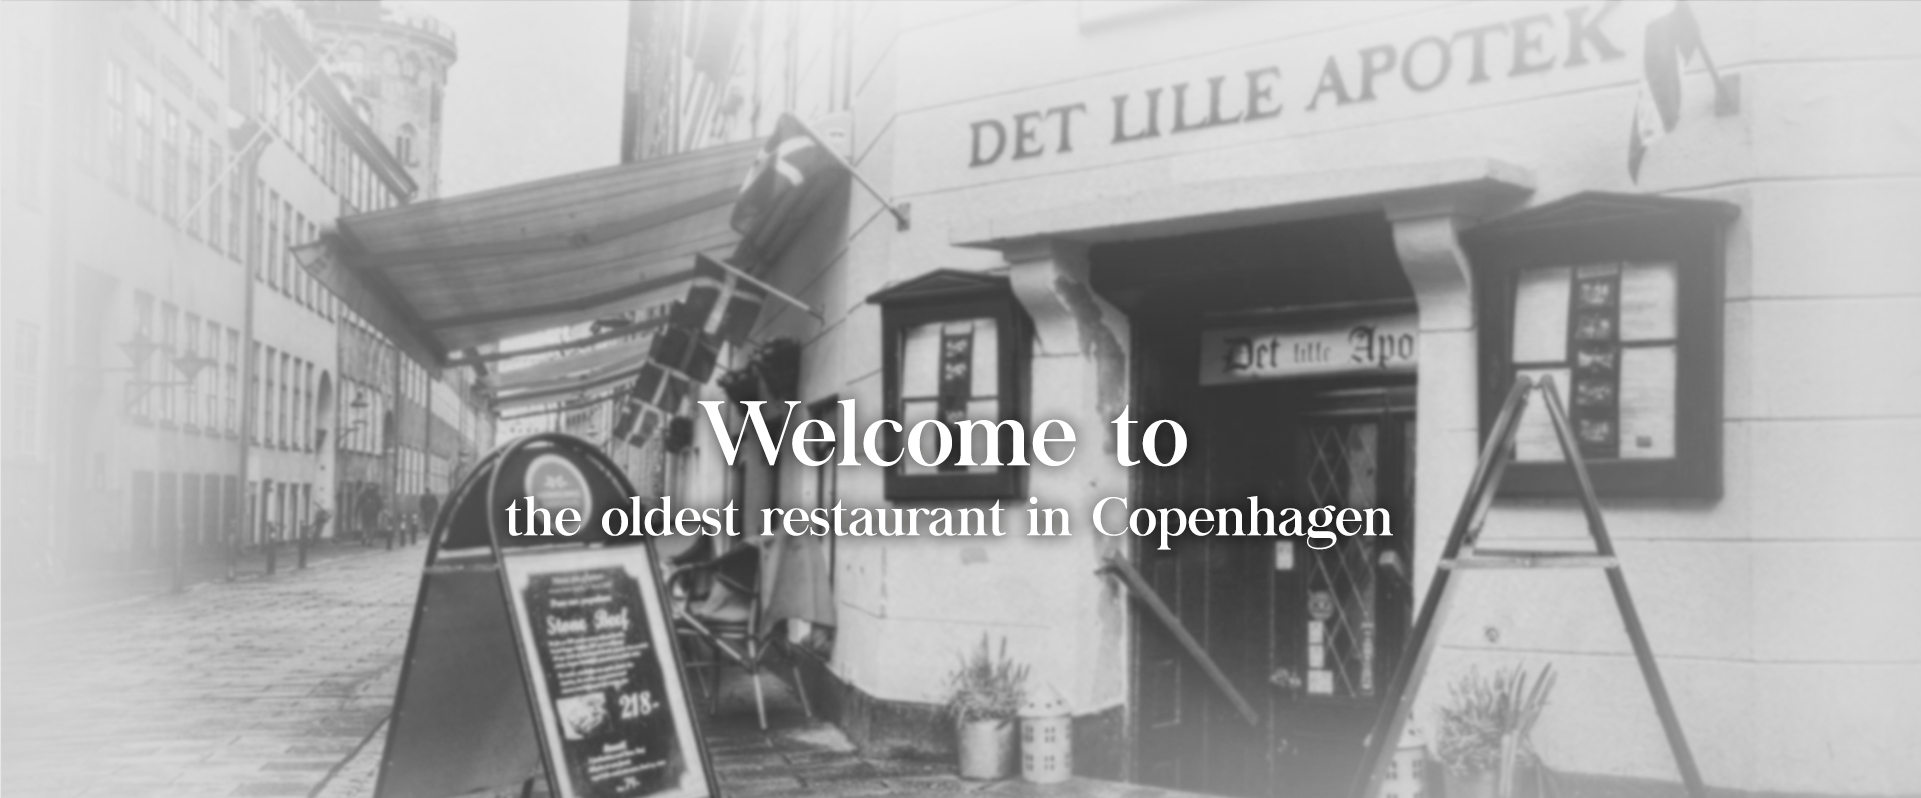 The oldest restaurant in Copenhagen